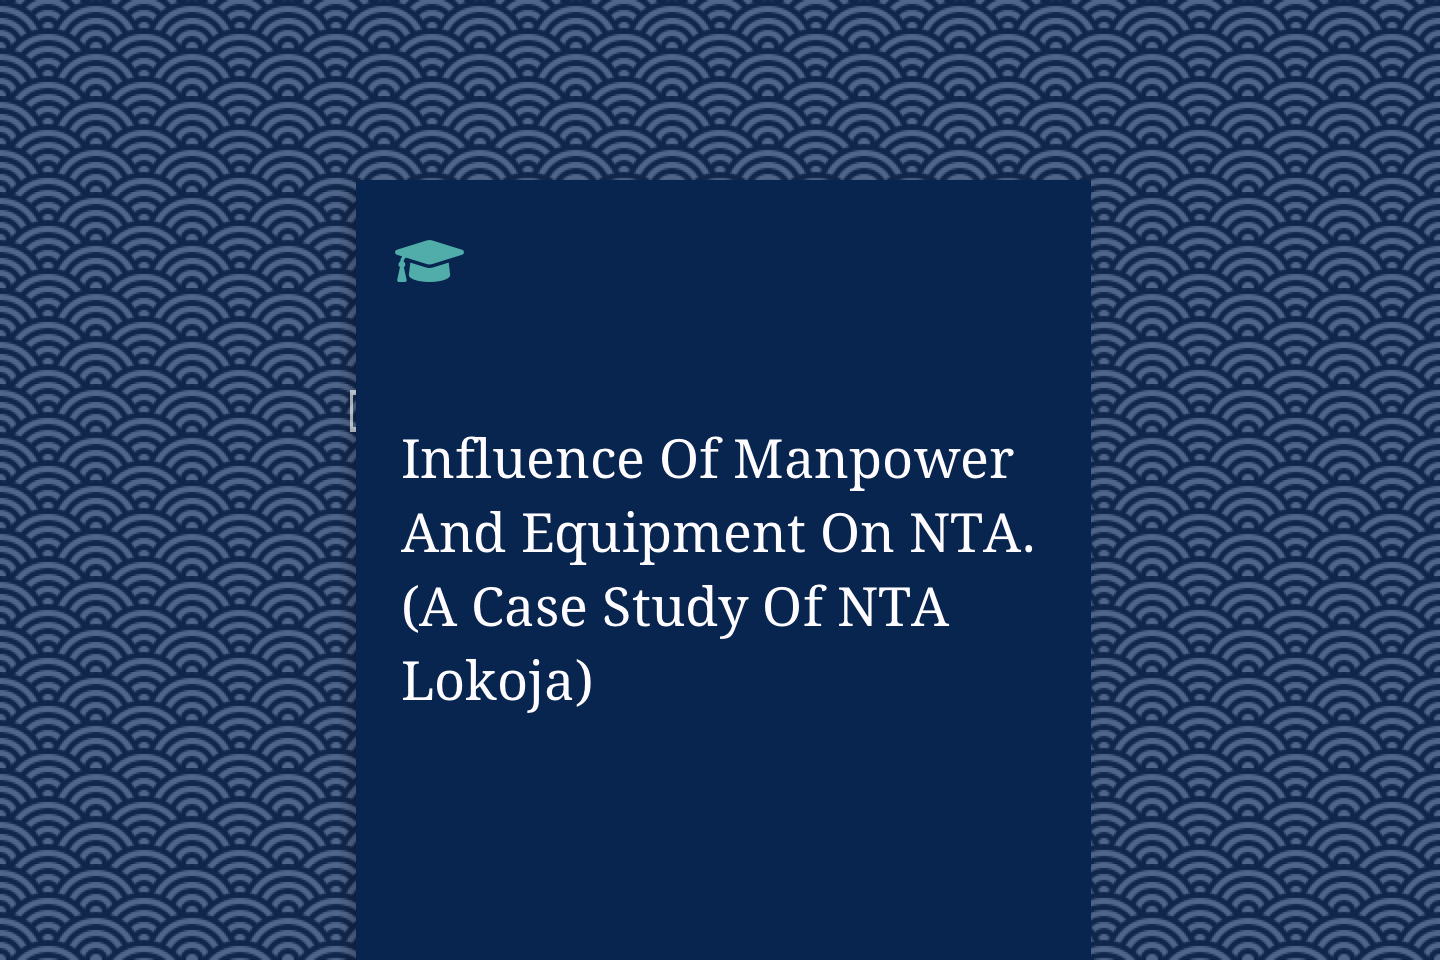 Influence Of Manpower And Equipment On NTA. (A Case Study Of NTA Lokoja)